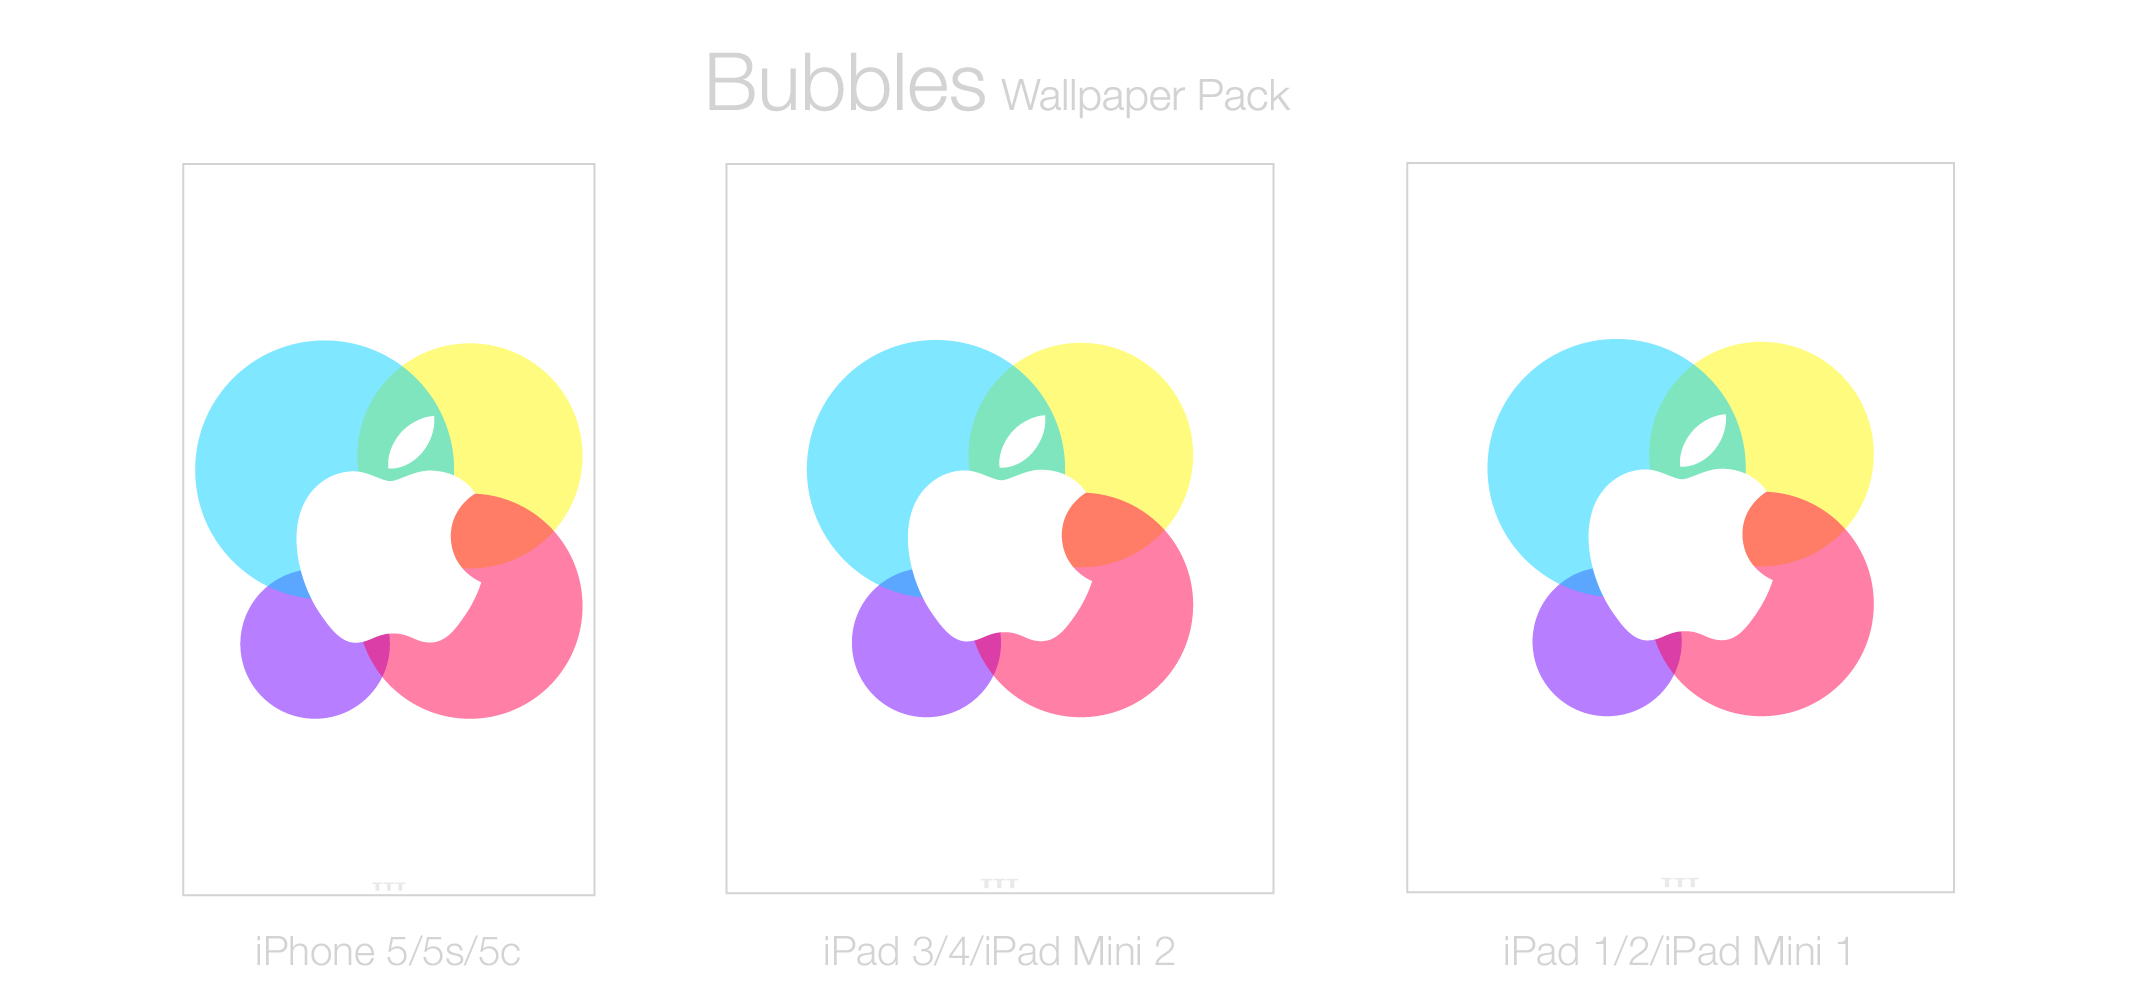 Bubbles Wallpaper Pack by TheTechnoToast